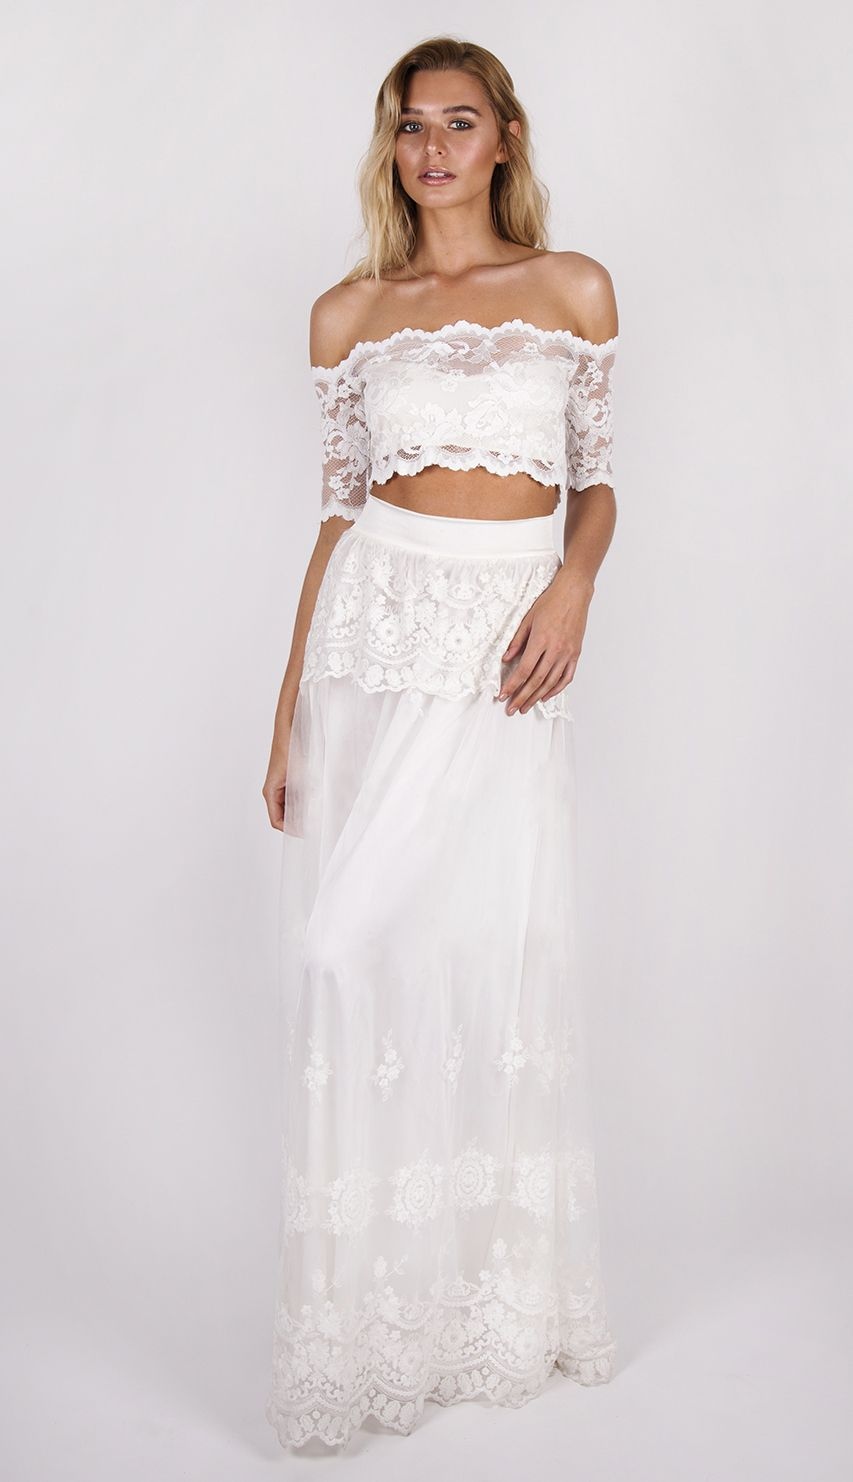 9422338863d Jasmine 2.0 | boho wedding dress | Grace loves lace, Boho wedding ...